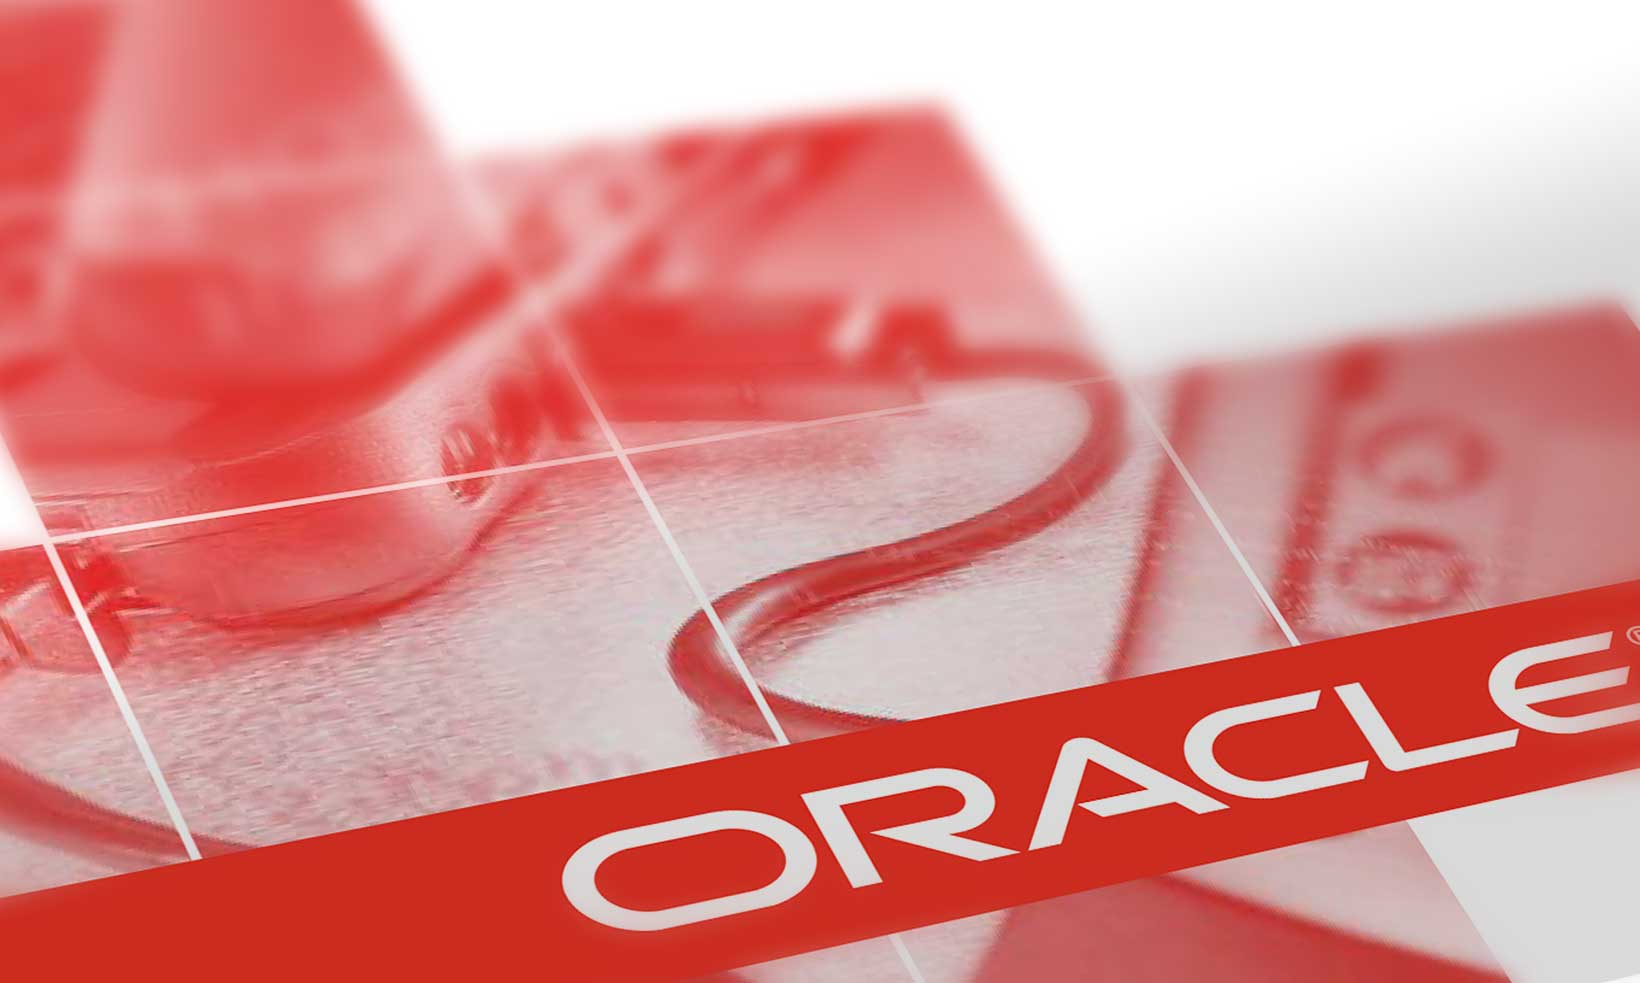 oracle ends up buying dyn to enhance its cloud computing services